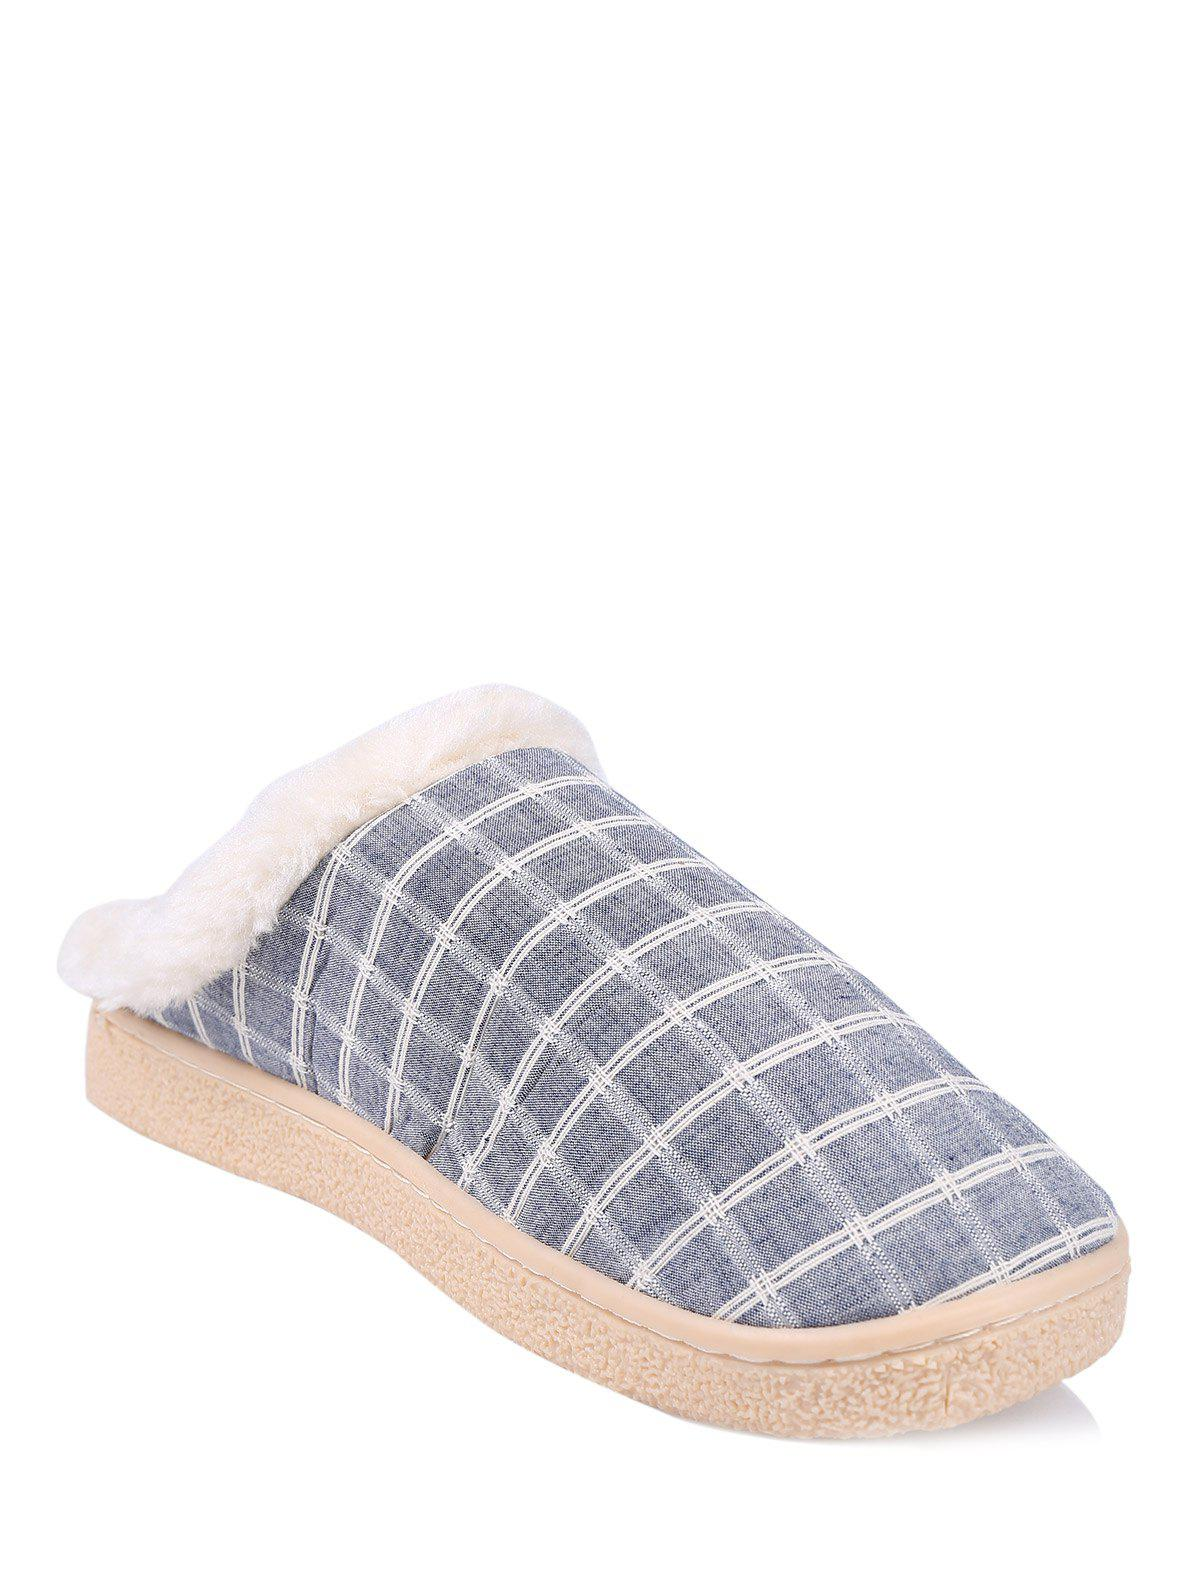 Plaid Flocking Winter Slippers - BLUE SIZE(42-43)